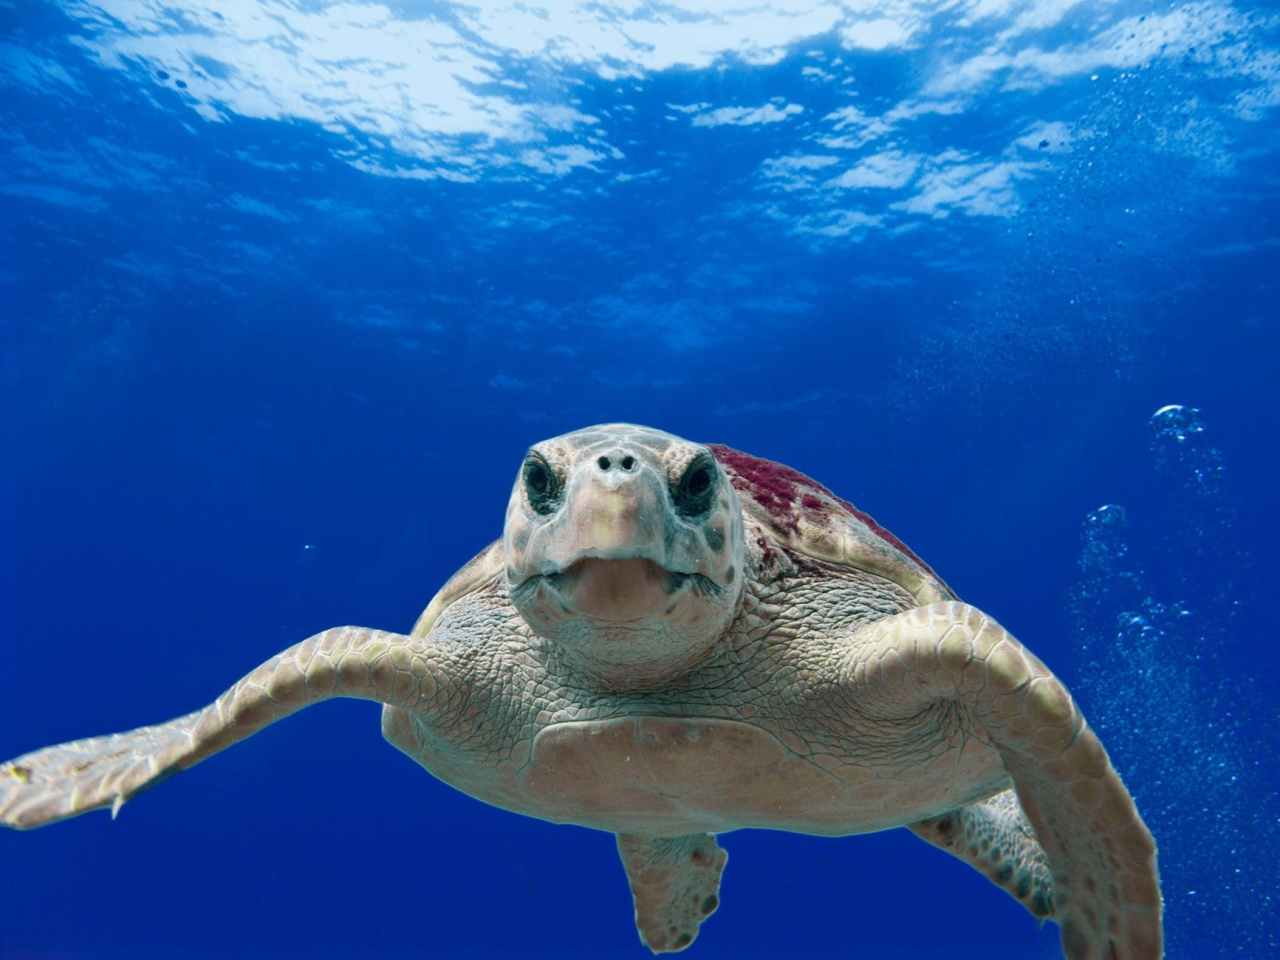 Turtles and Scuba Diving inFlorida